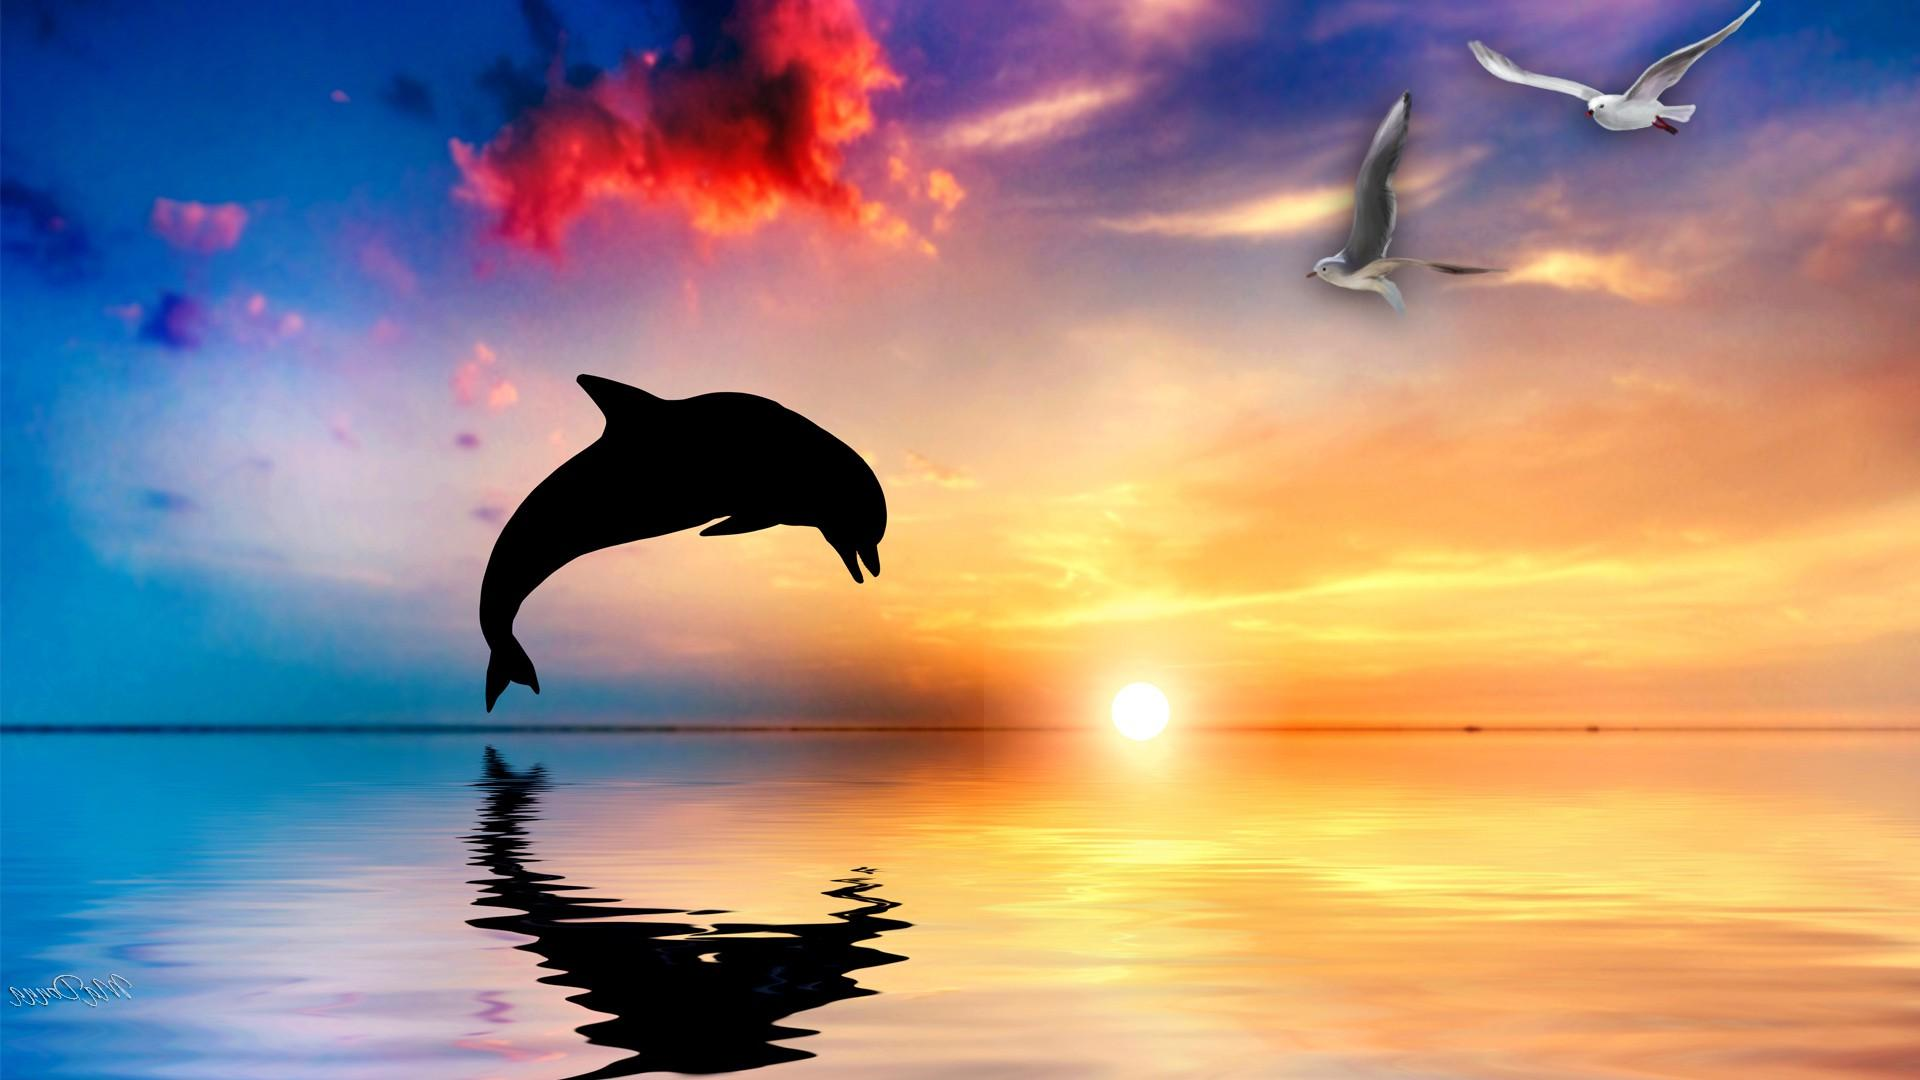 Hd Wallpapers Images: Dolphin HD Wallpapers